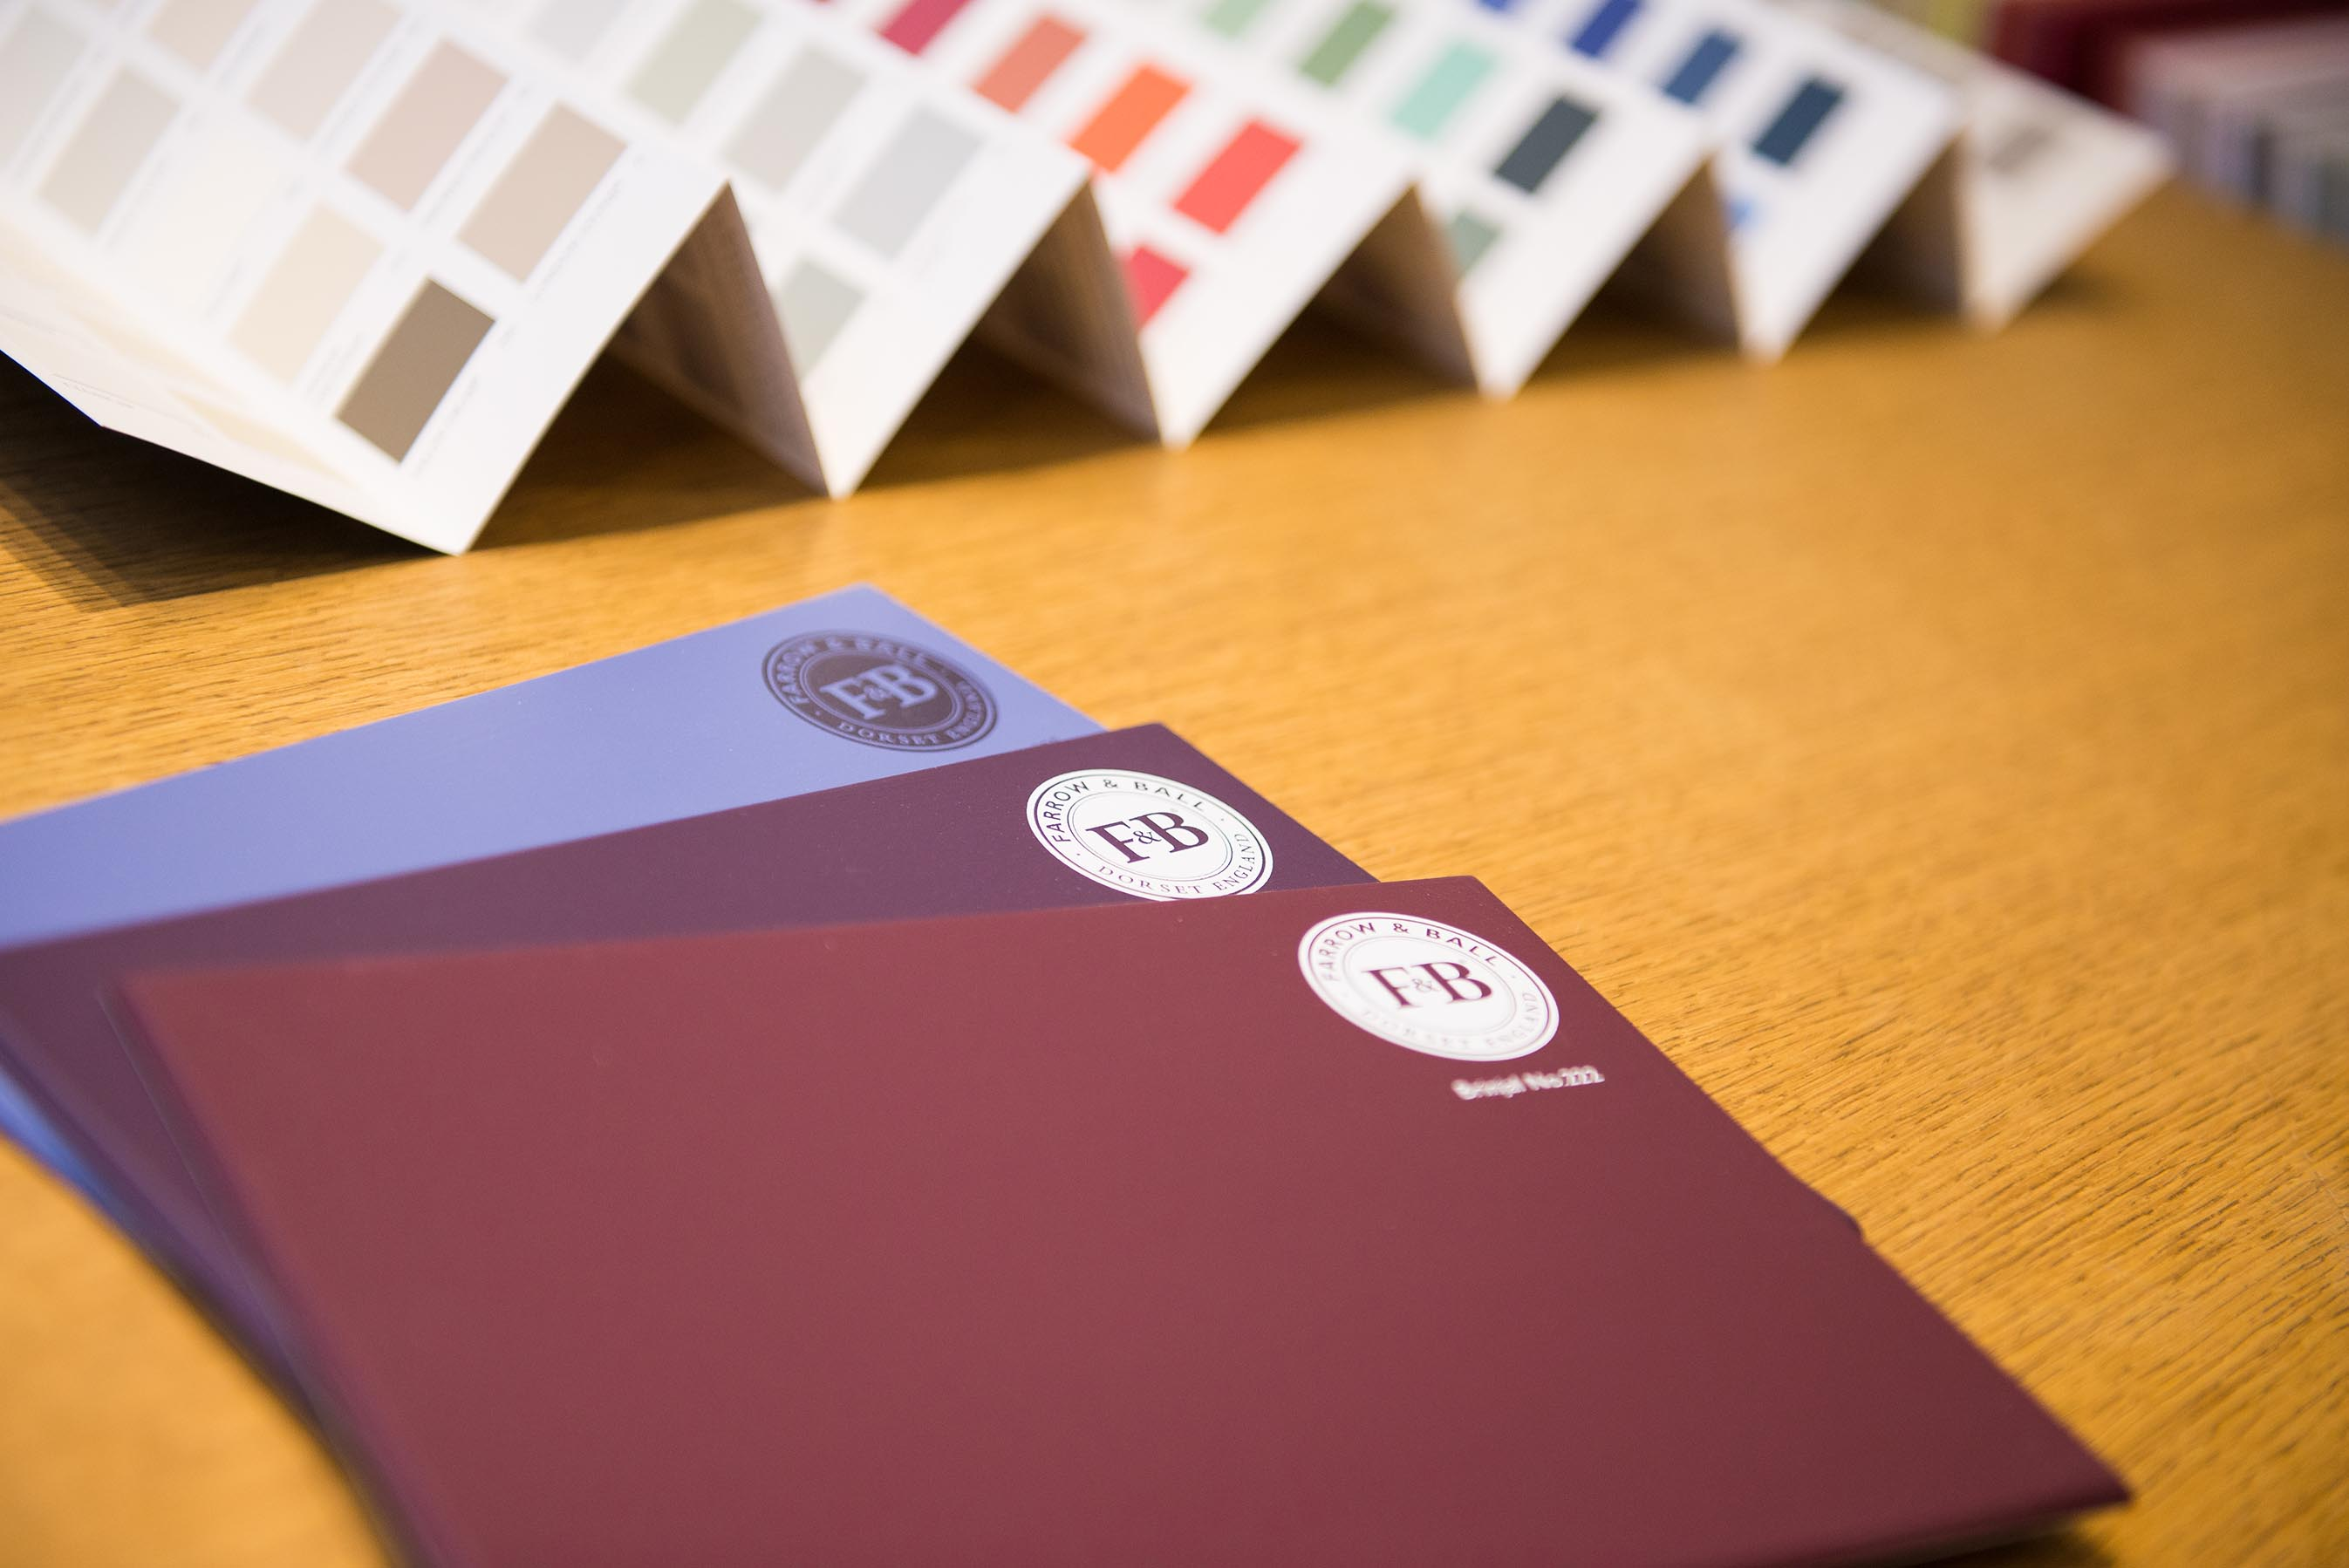 Farrow & Ball Paint Sample Colour Sample Boards